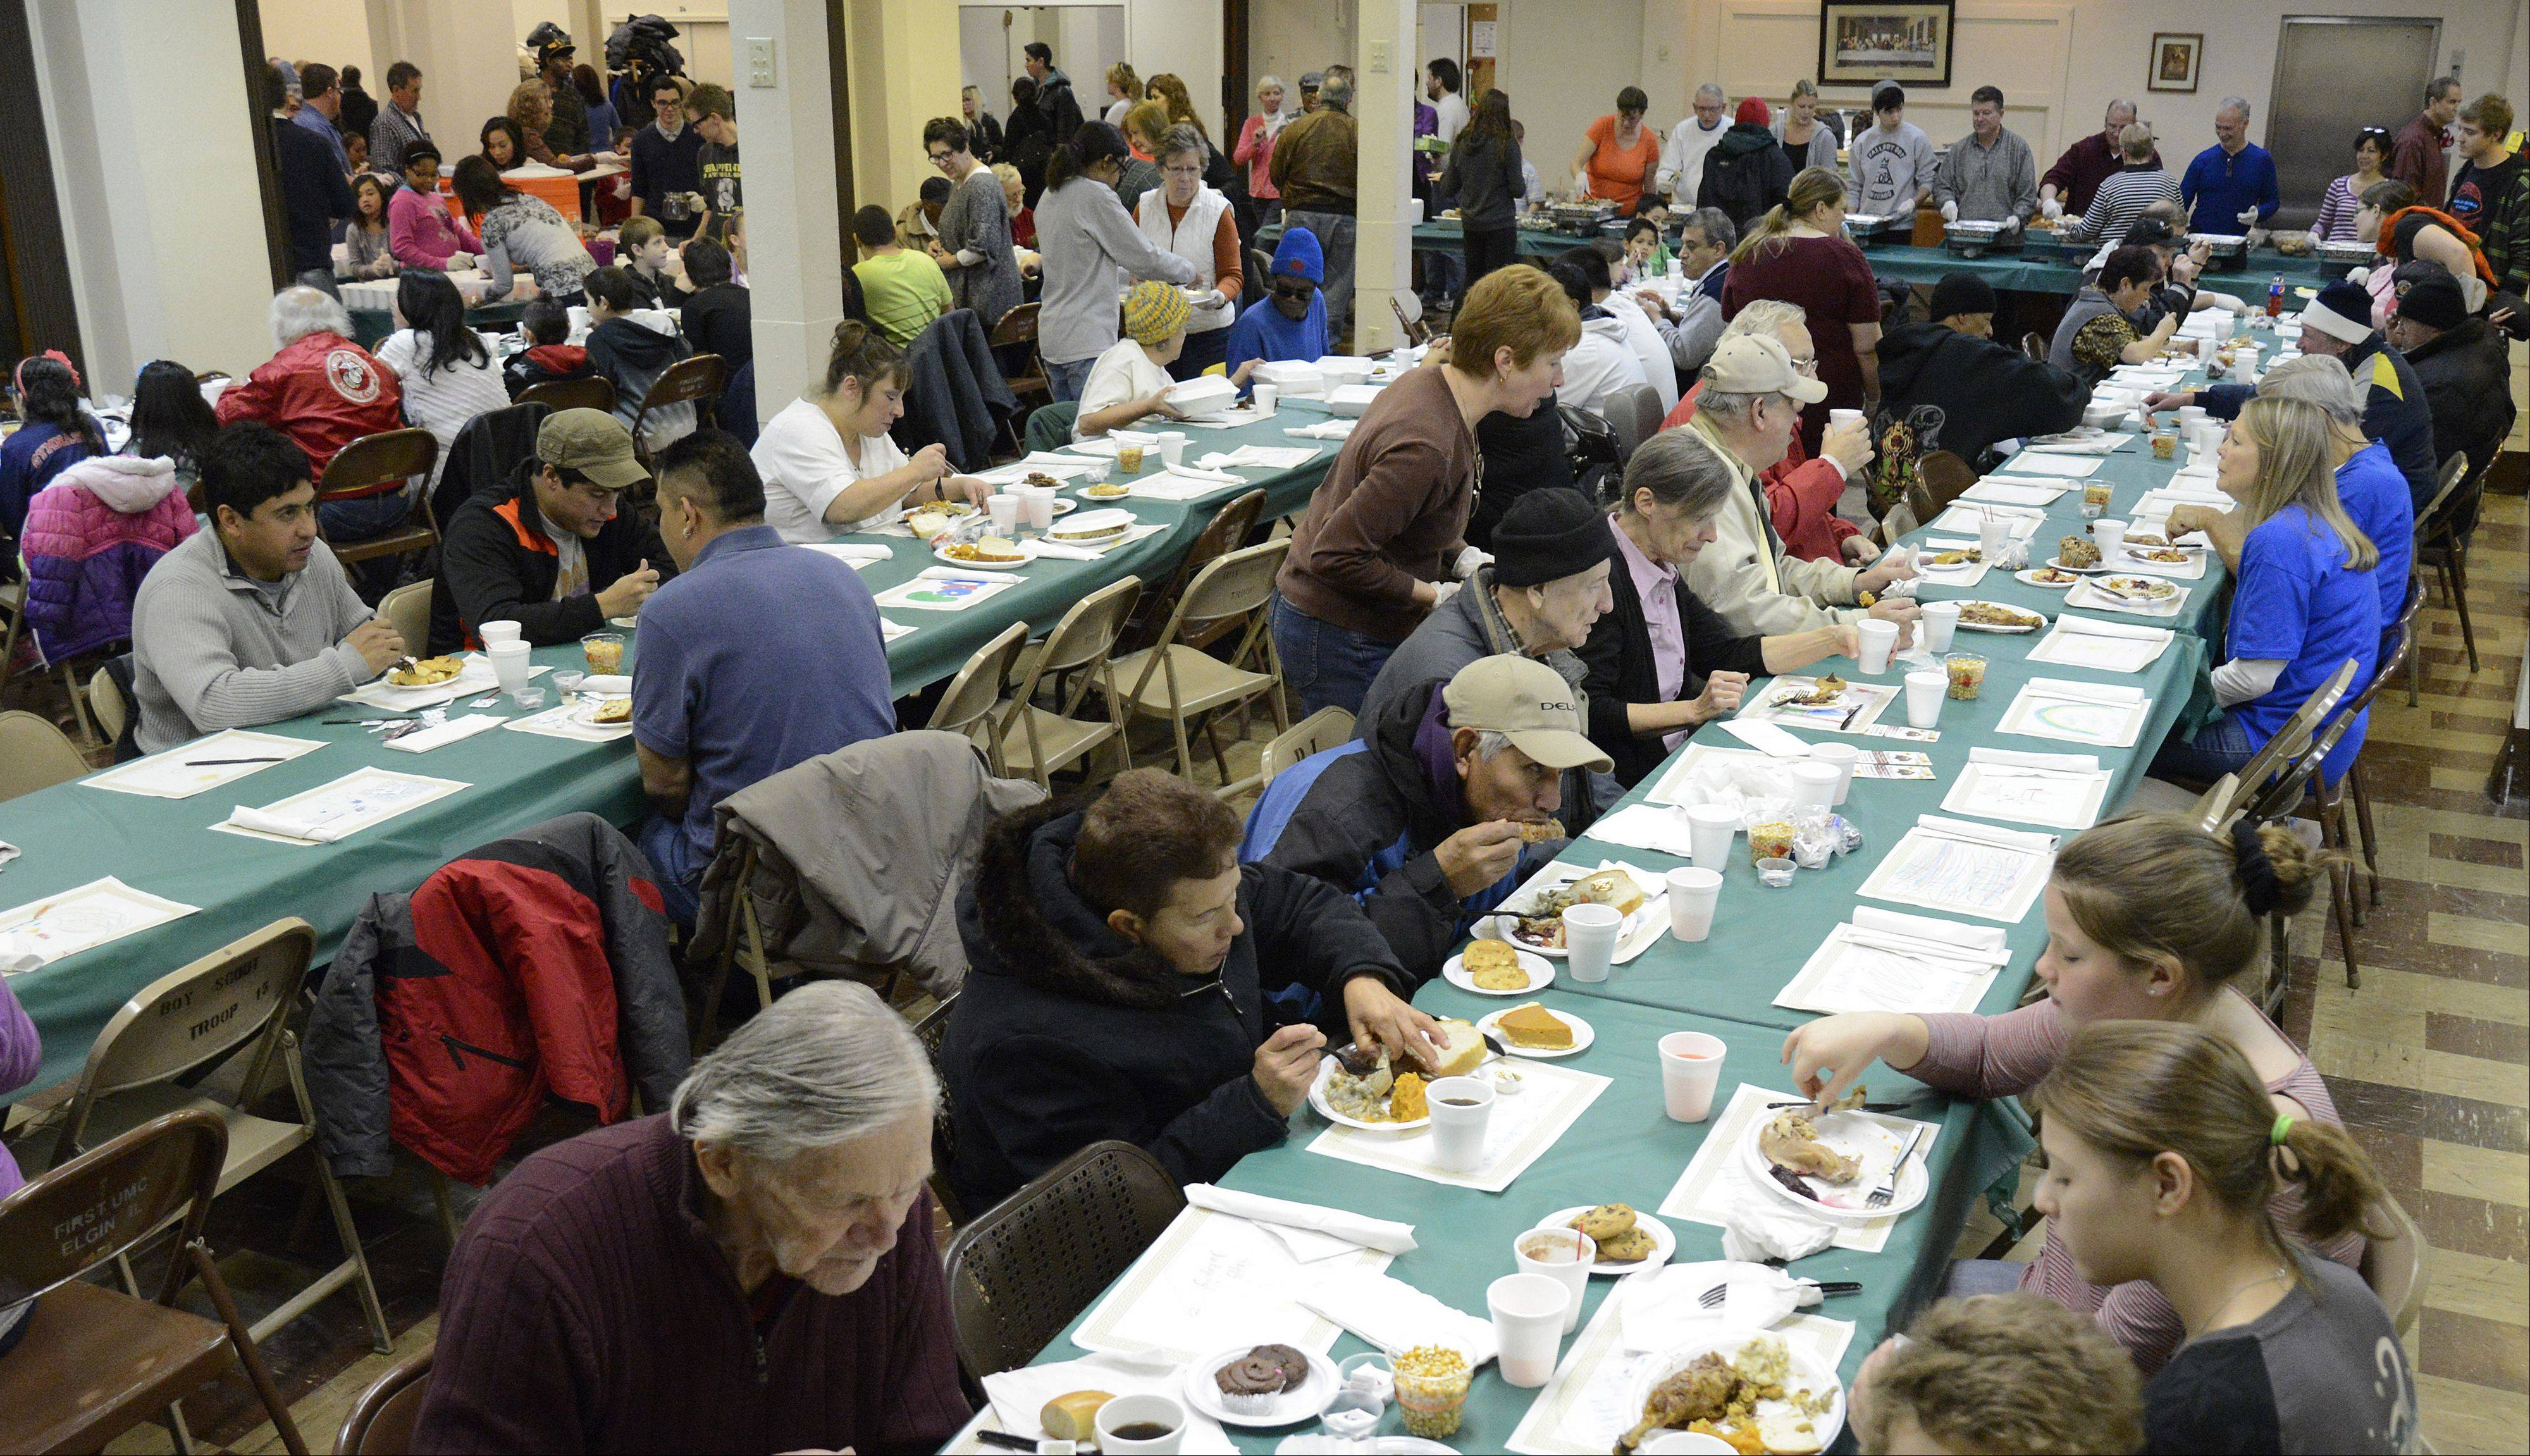 People gather to eat for Thursday's Elgin Community Thanksgiving Dinner at the First United Methodist Church in Elgin.